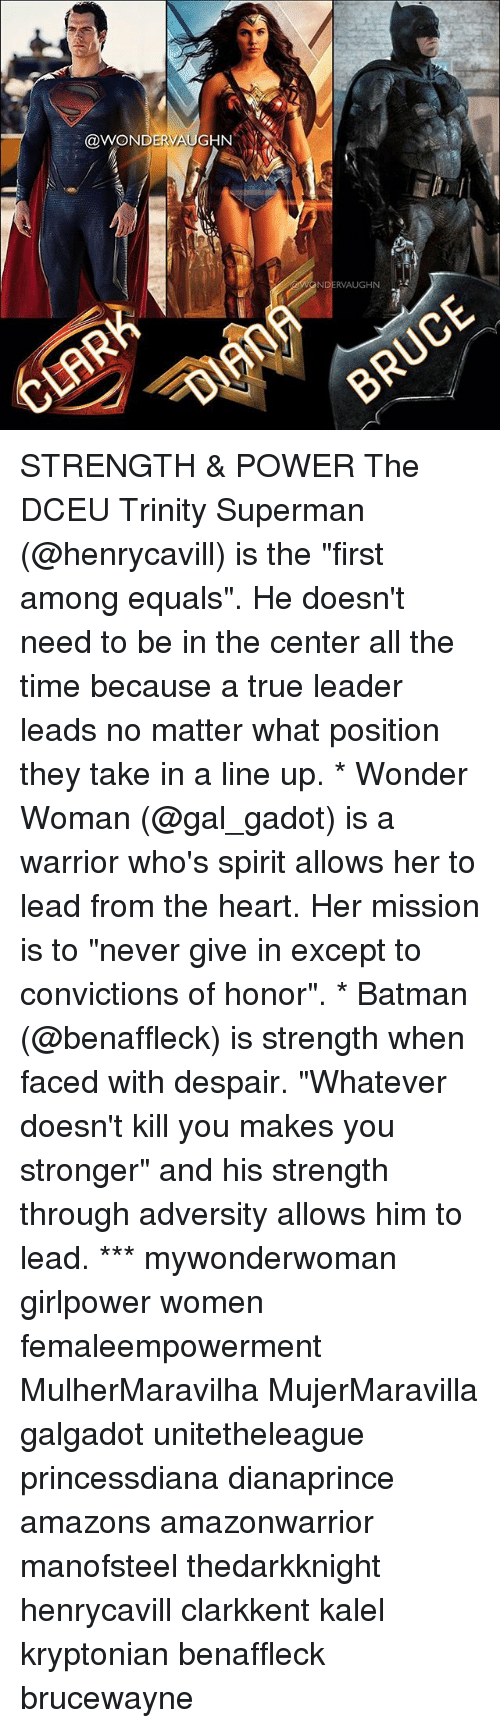 "adversity: @WONDERVAUGHN STRENGTH & POWER The DCEU Trinity Superman (@henrycavill) is the ""first among equals"". He doesn't need to be in the center all the time because a true leader leads no matter what position they take in a line up. * Wonder Woman (@gal_gadot) is a warrior who's spirit allows her to lead from the heart. Her mission is to ""never give in except to convictions of honor"". * Batman (@benaffleck) is strength when faced with despair. ""Whatever doesn't kill you makes you stronger"" and his strength through adversity allows him to lead. *** mywonderwoman girlpower women femaleempowerment MulherMaravilha MujerMaravilla galgadot unitetheleague princessdiana dianaprince amazons amazonwarrior manofsteel thedarkknight henrycavill clarkkent kalel kryptonian benaffleck brucewayne"